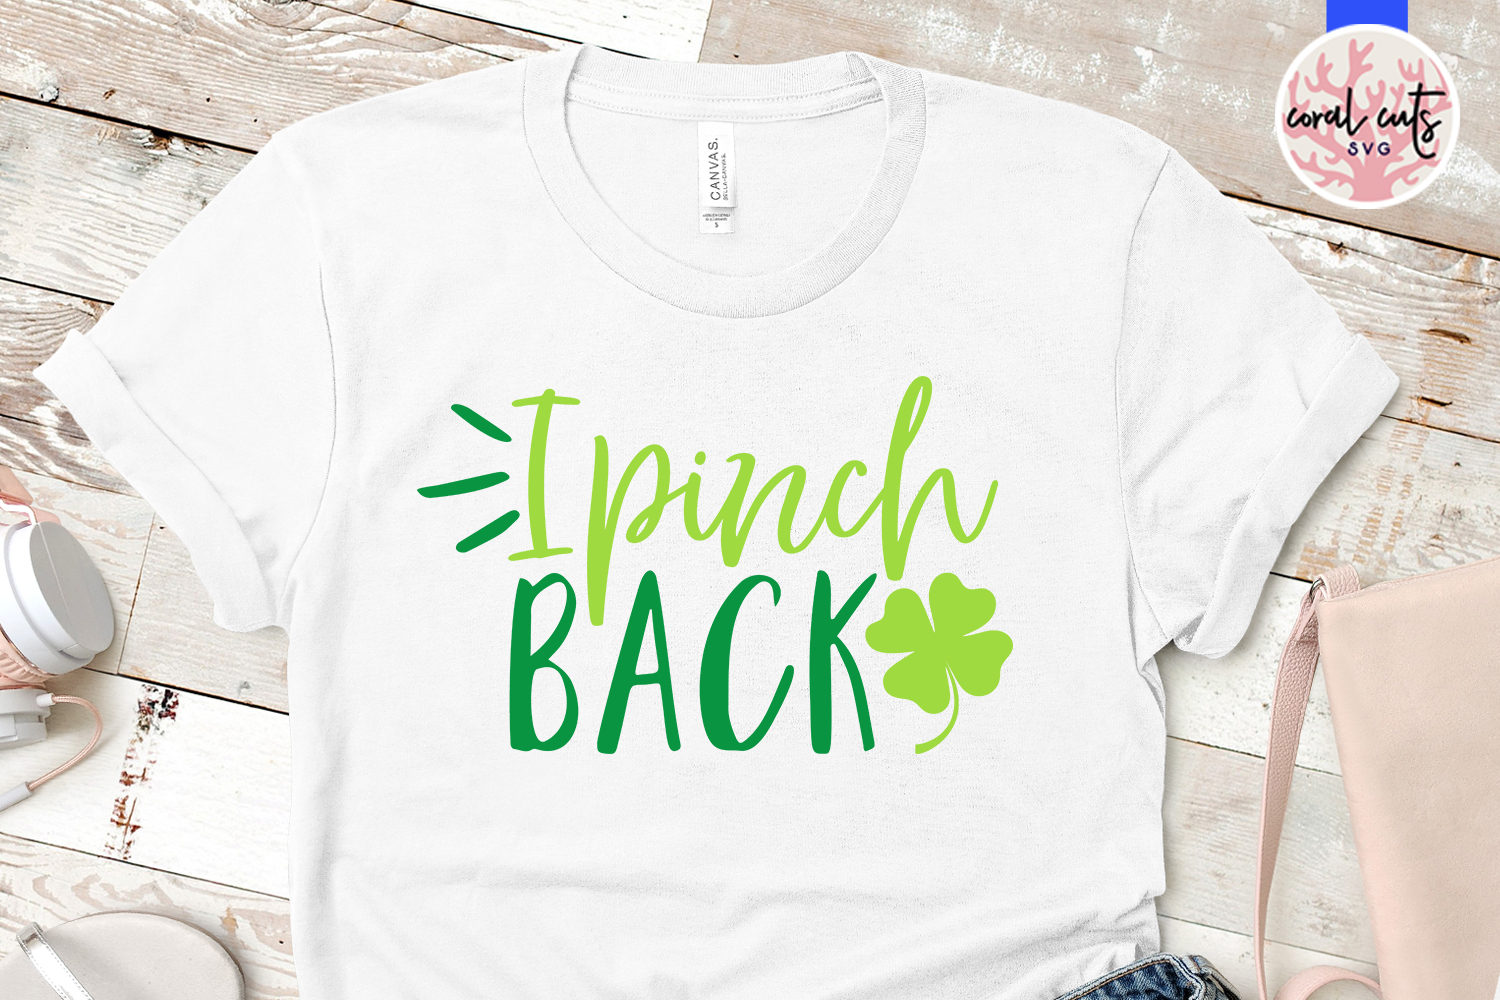 I pinch back - St. Patrick's Day SVG EPS DXF PNG example image 2